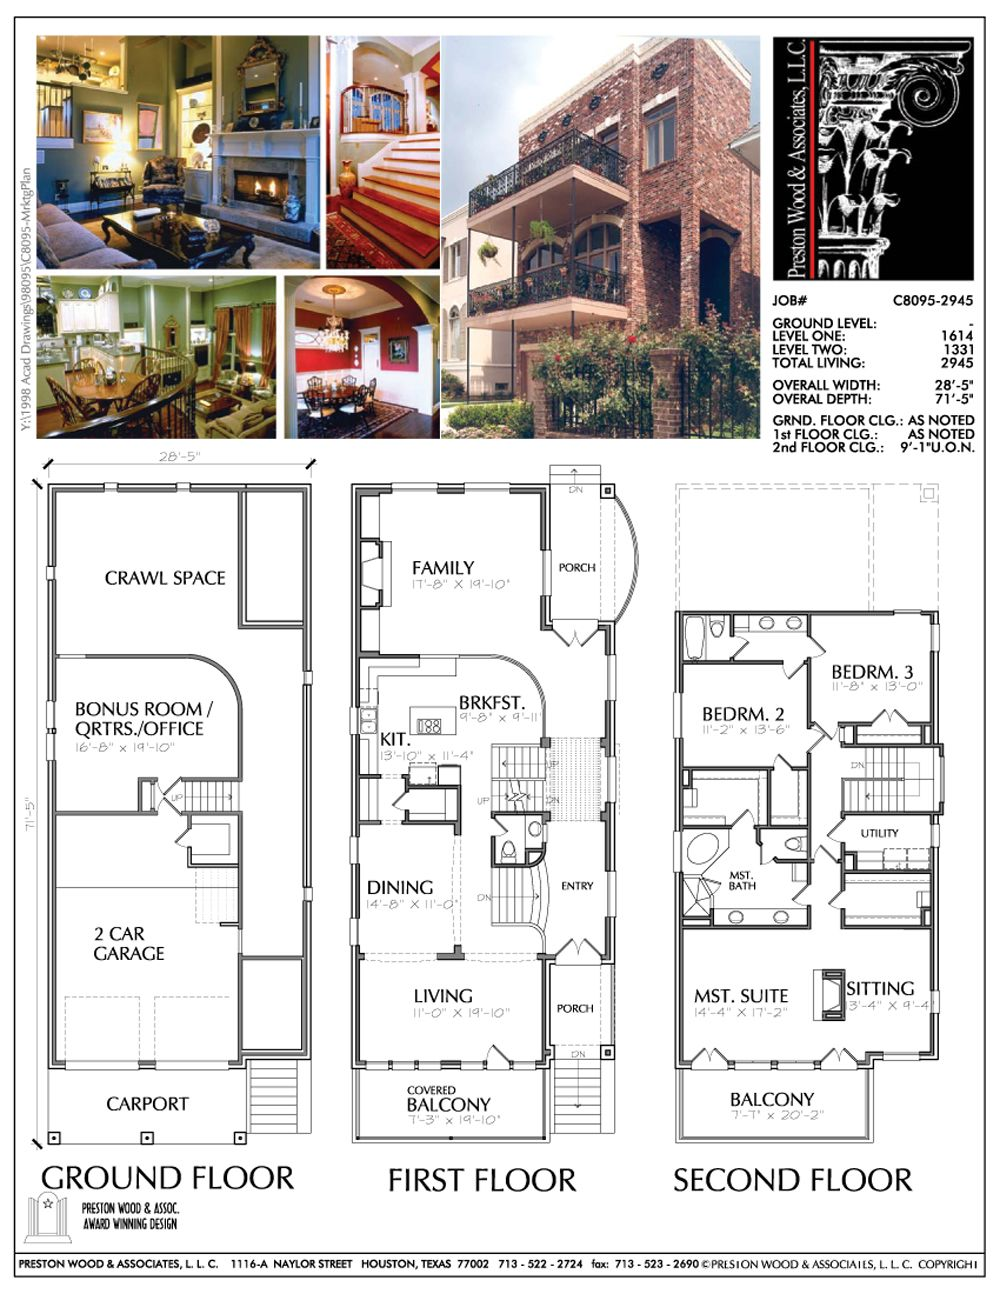 Three Story Urban Home Plan Ac8095 Narrow Lot House Plans Narrow House Plans Split Level House Plans